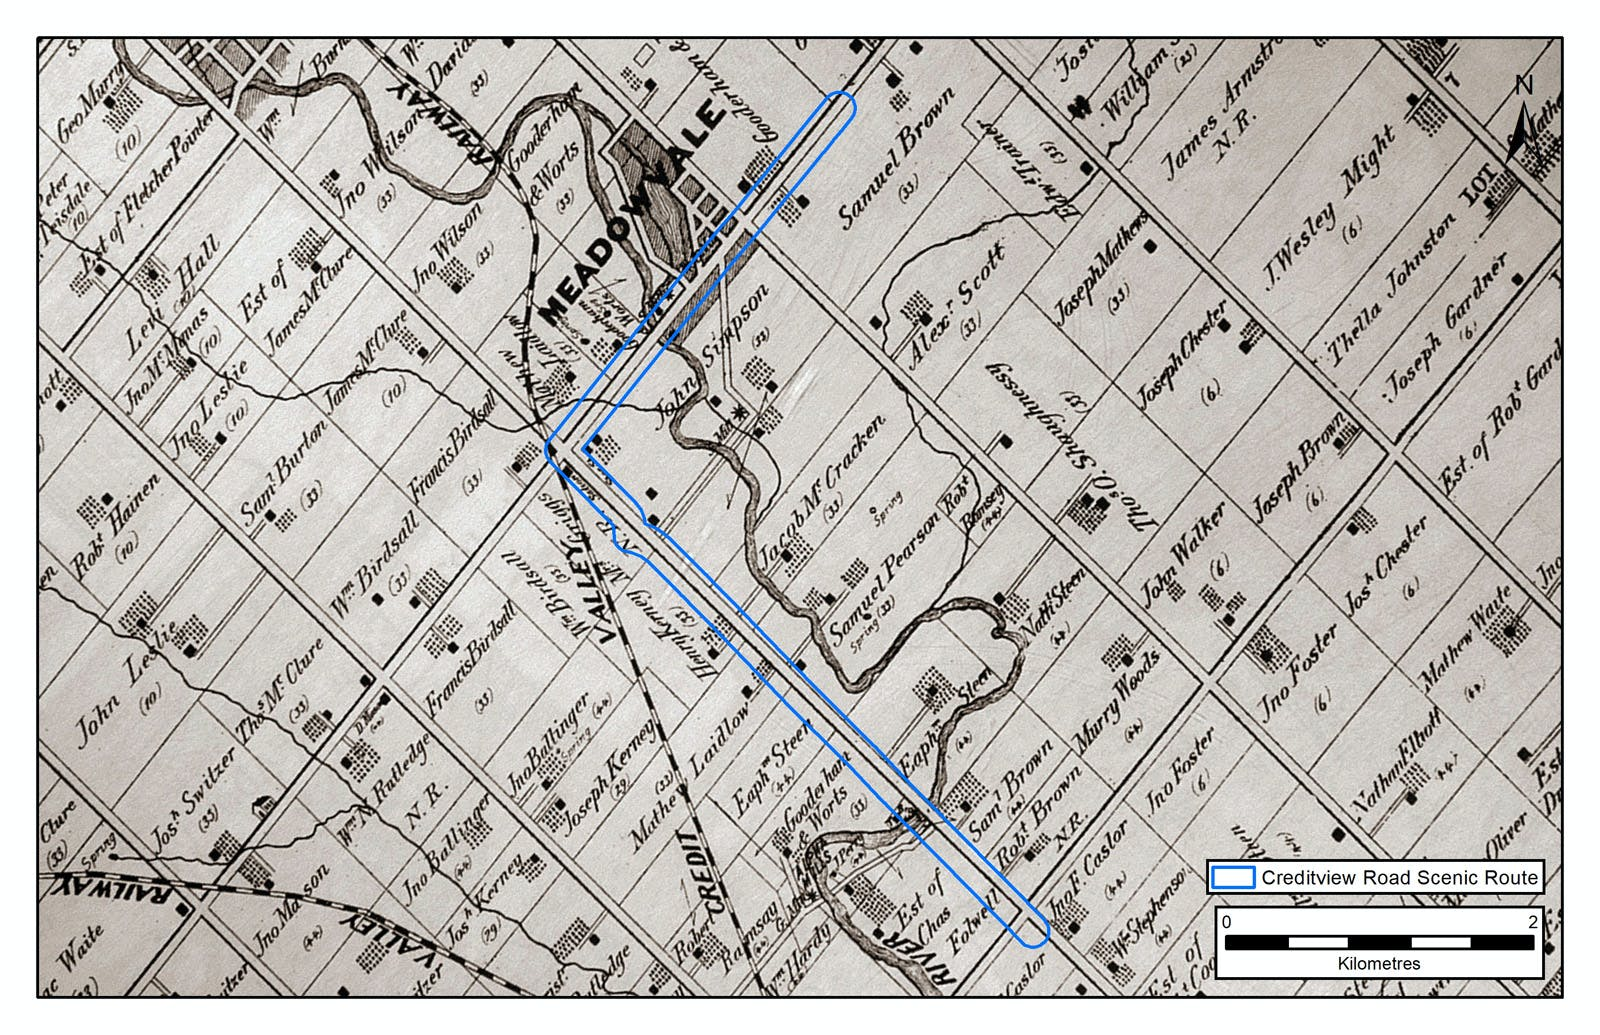 Creditview Road on historical mapping from 1880